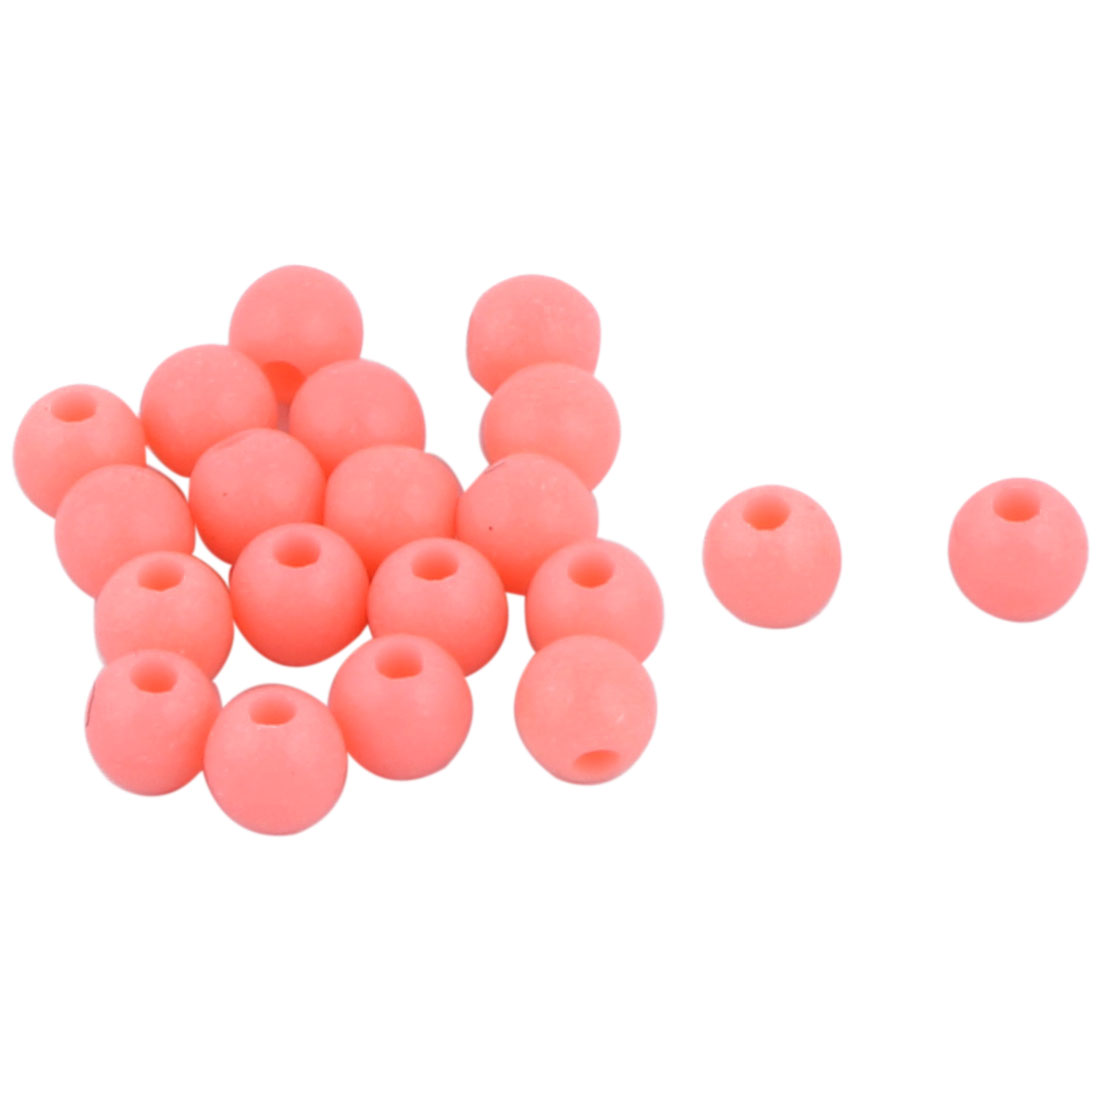 20 Pcs Salmon Hard Plastic Luminous Round Shaped Beads Fishing Lures